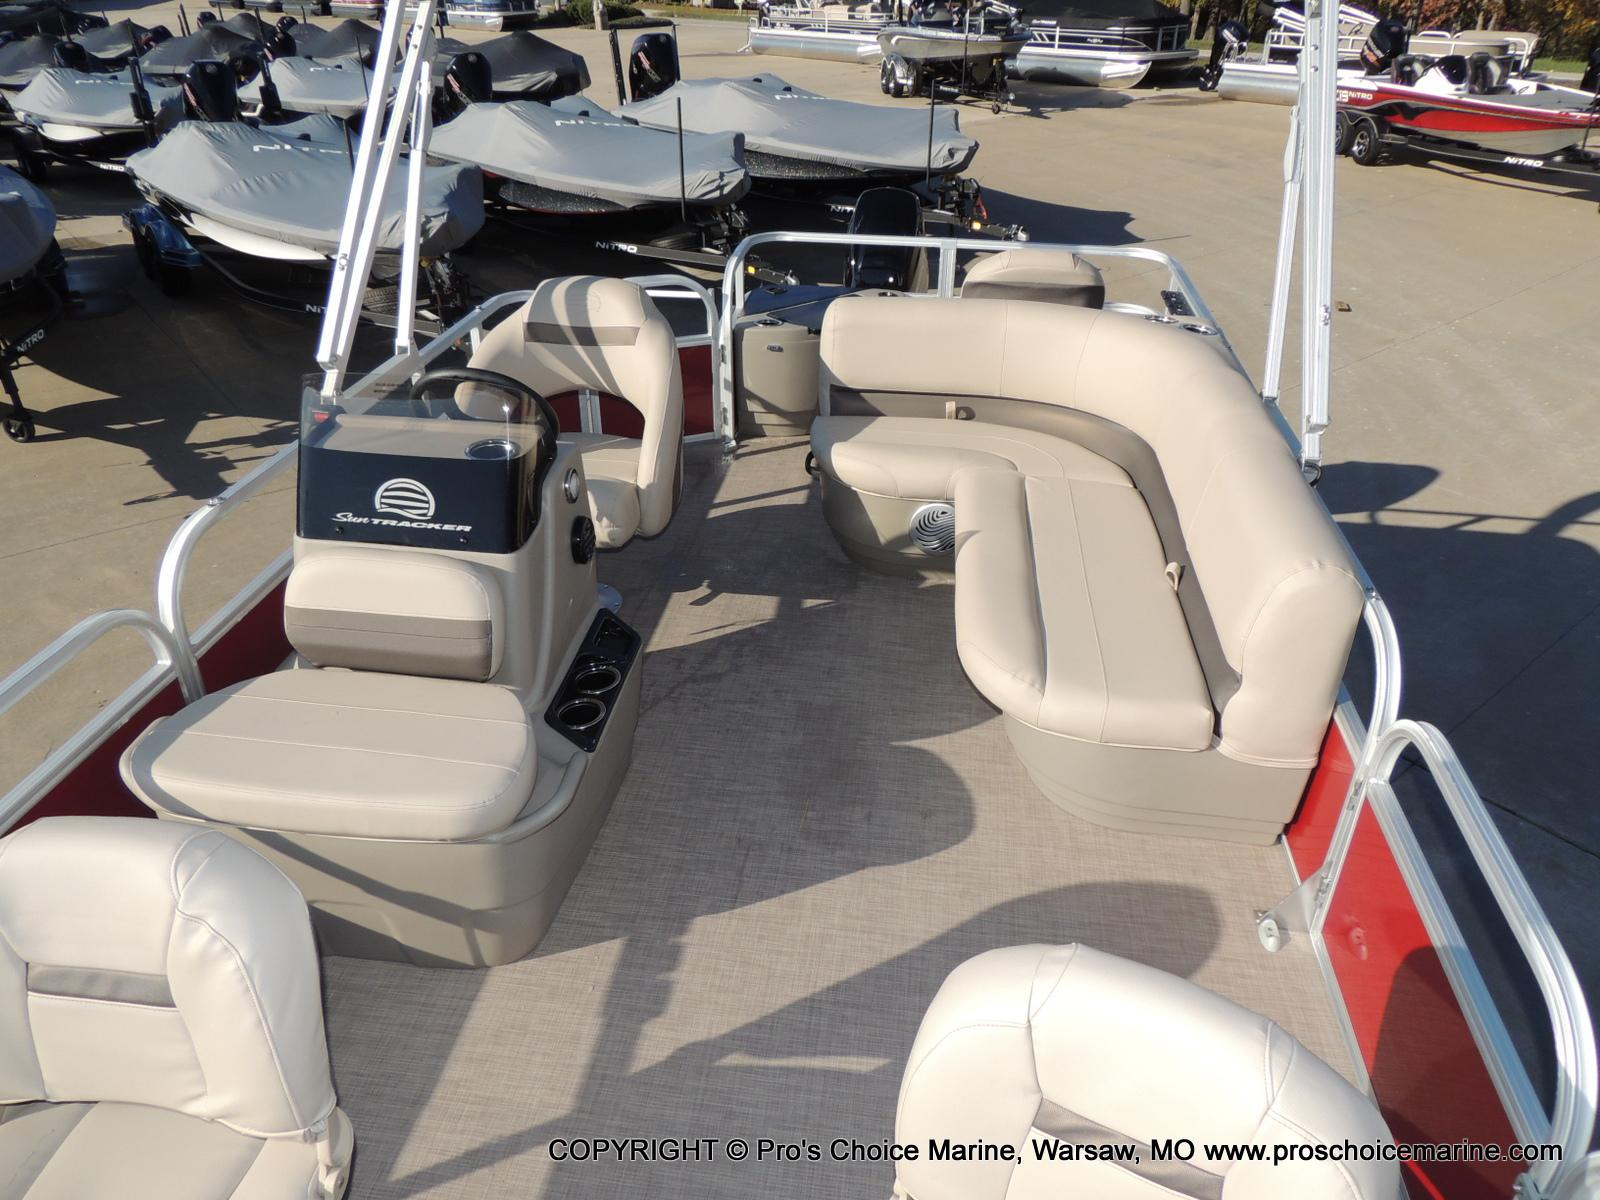 2020 Sun Tracker boat for sale, model of the boat is Bass Buggy 18 DLX & Image # 8 of 50